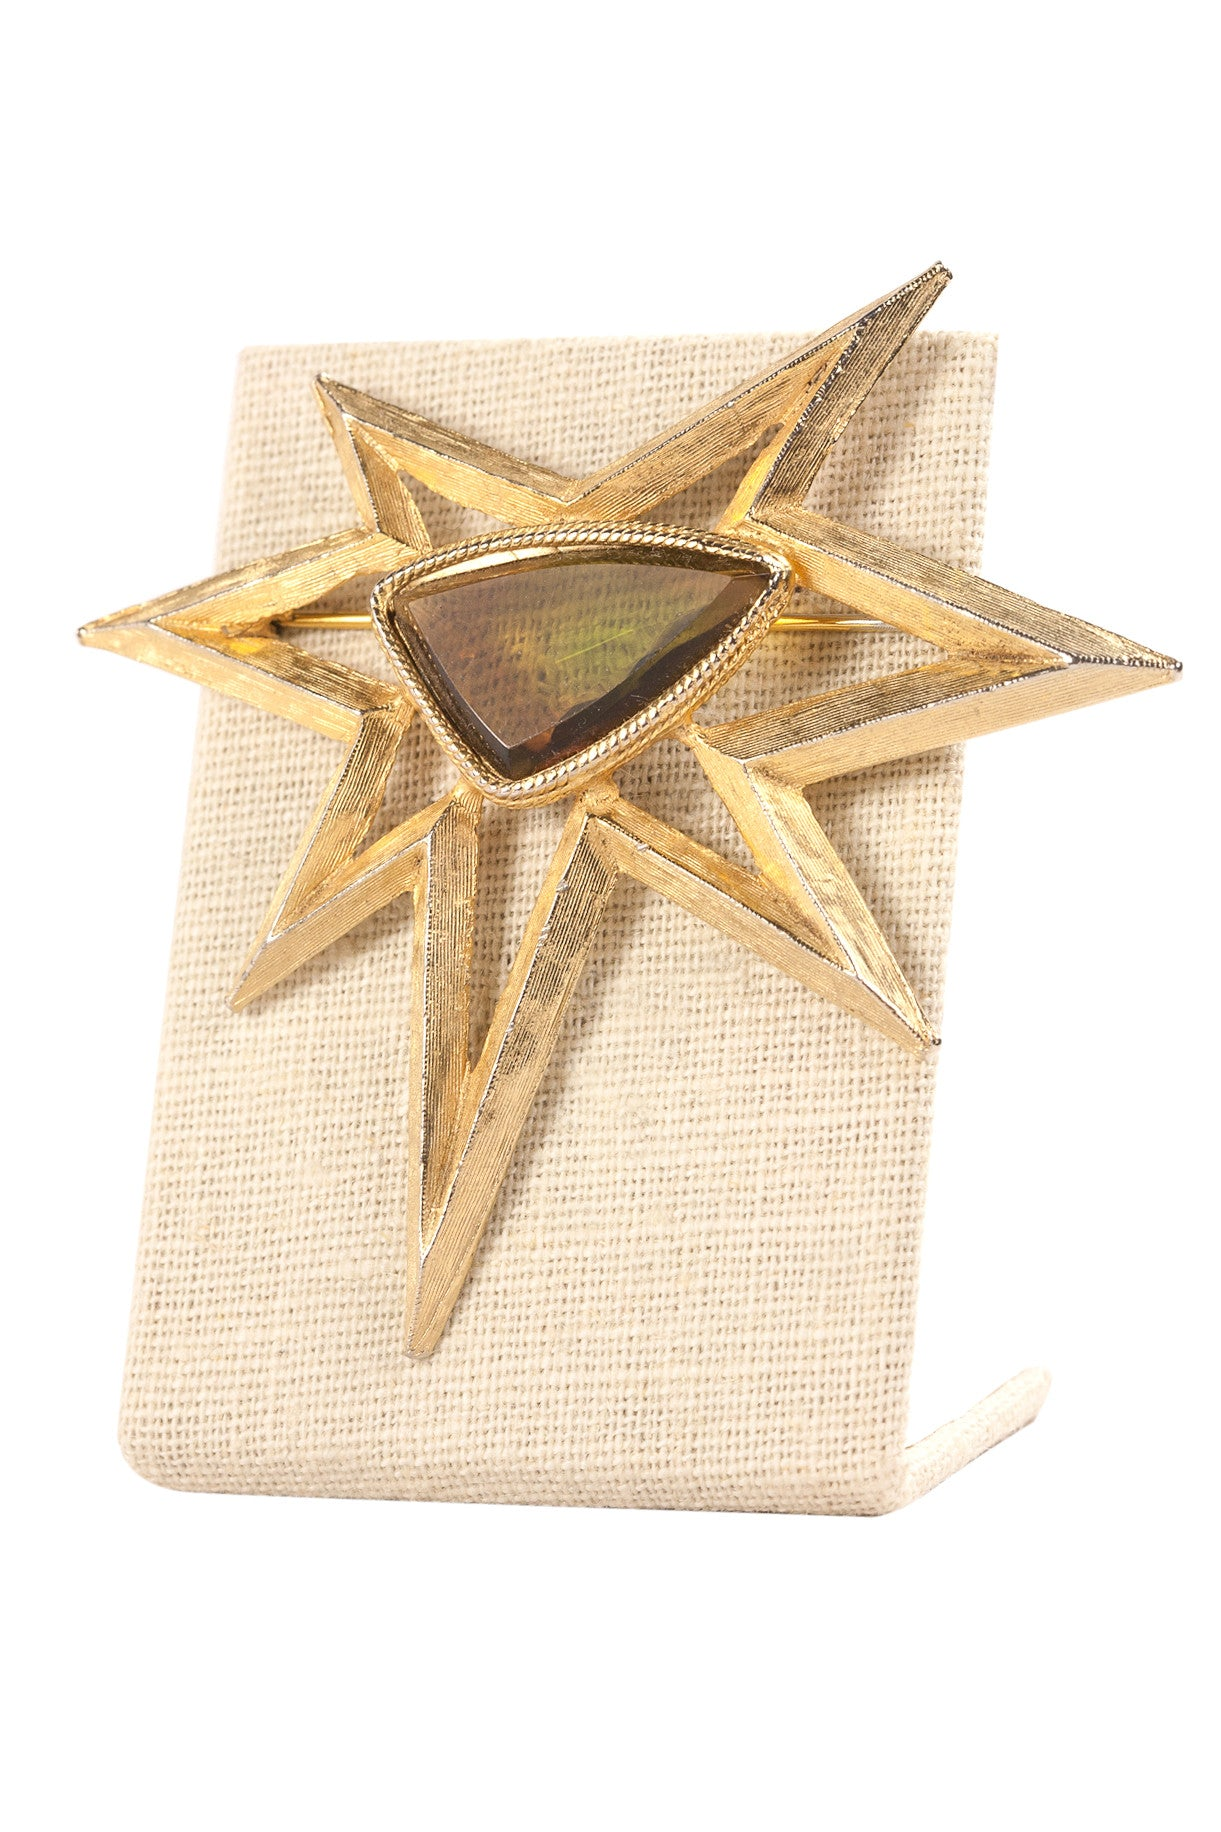 60's__Accessocraft__Statement Star Brooch